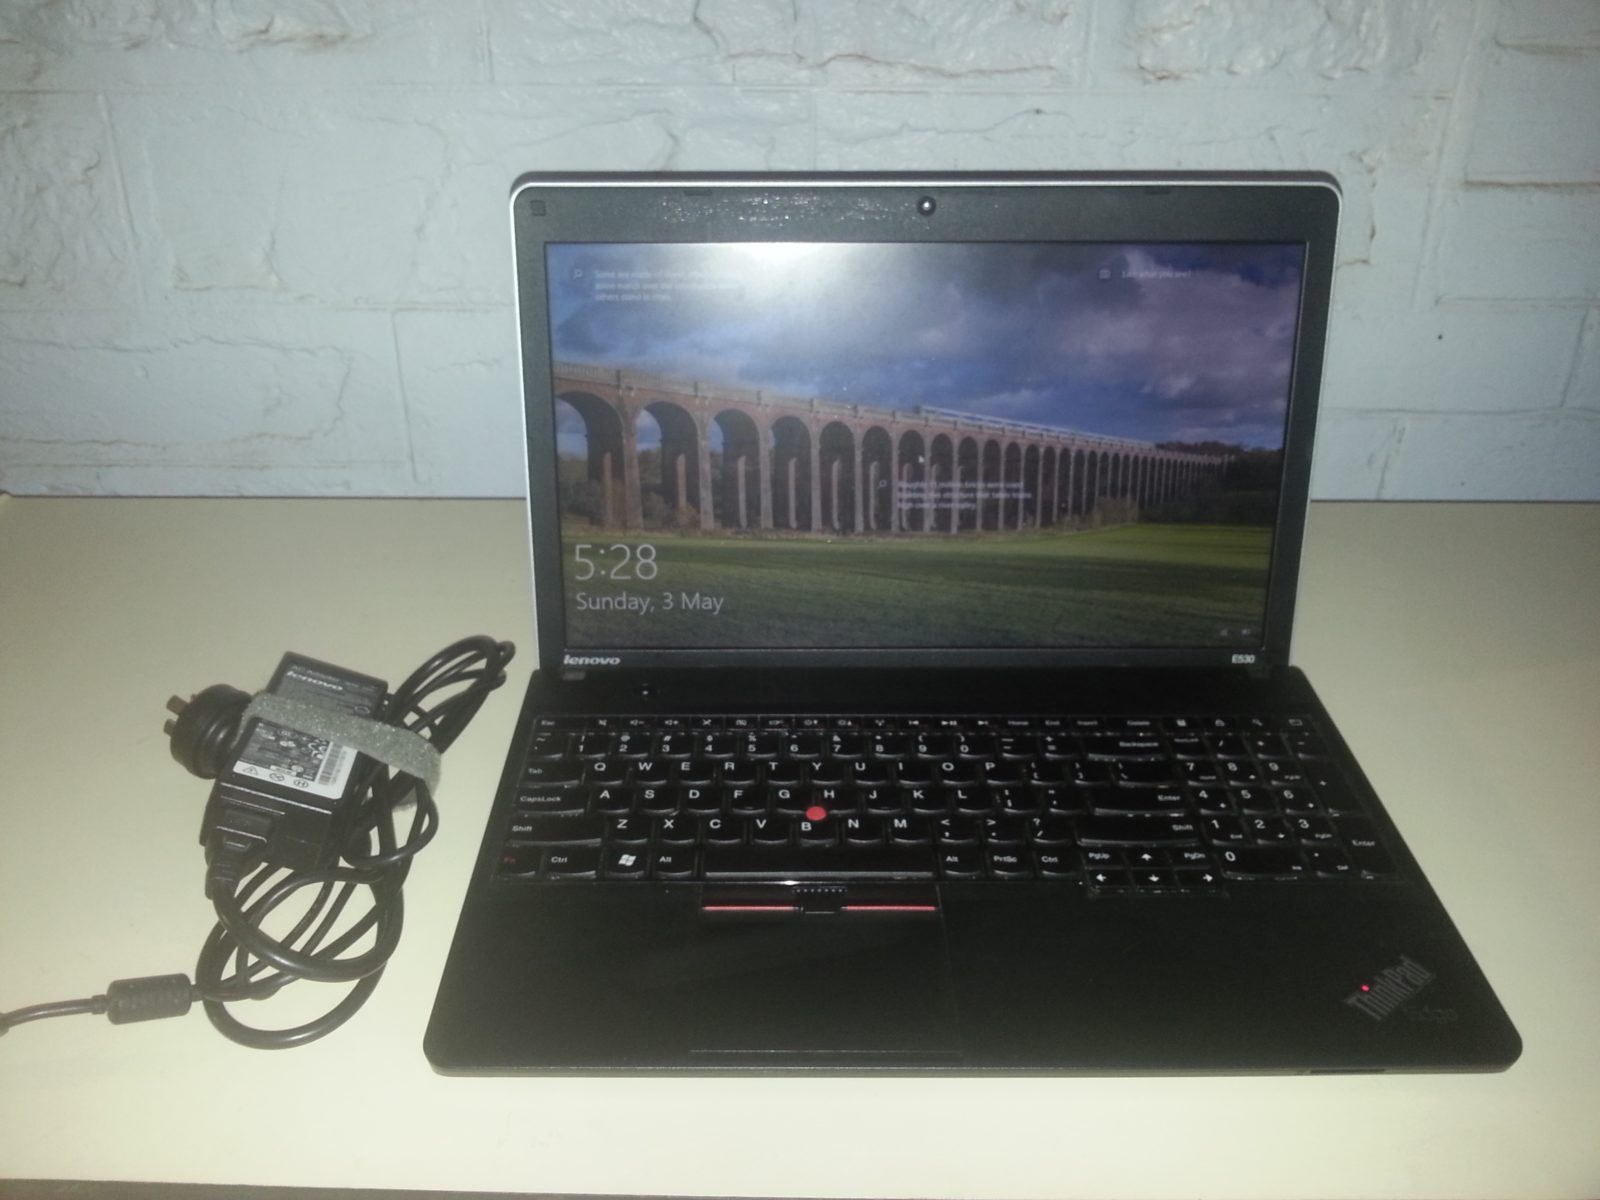 Lenovo E530 NB - 15.6in, i7,2.1ghz,8Gb RAM, 750Gb SATA - Unit & PSU